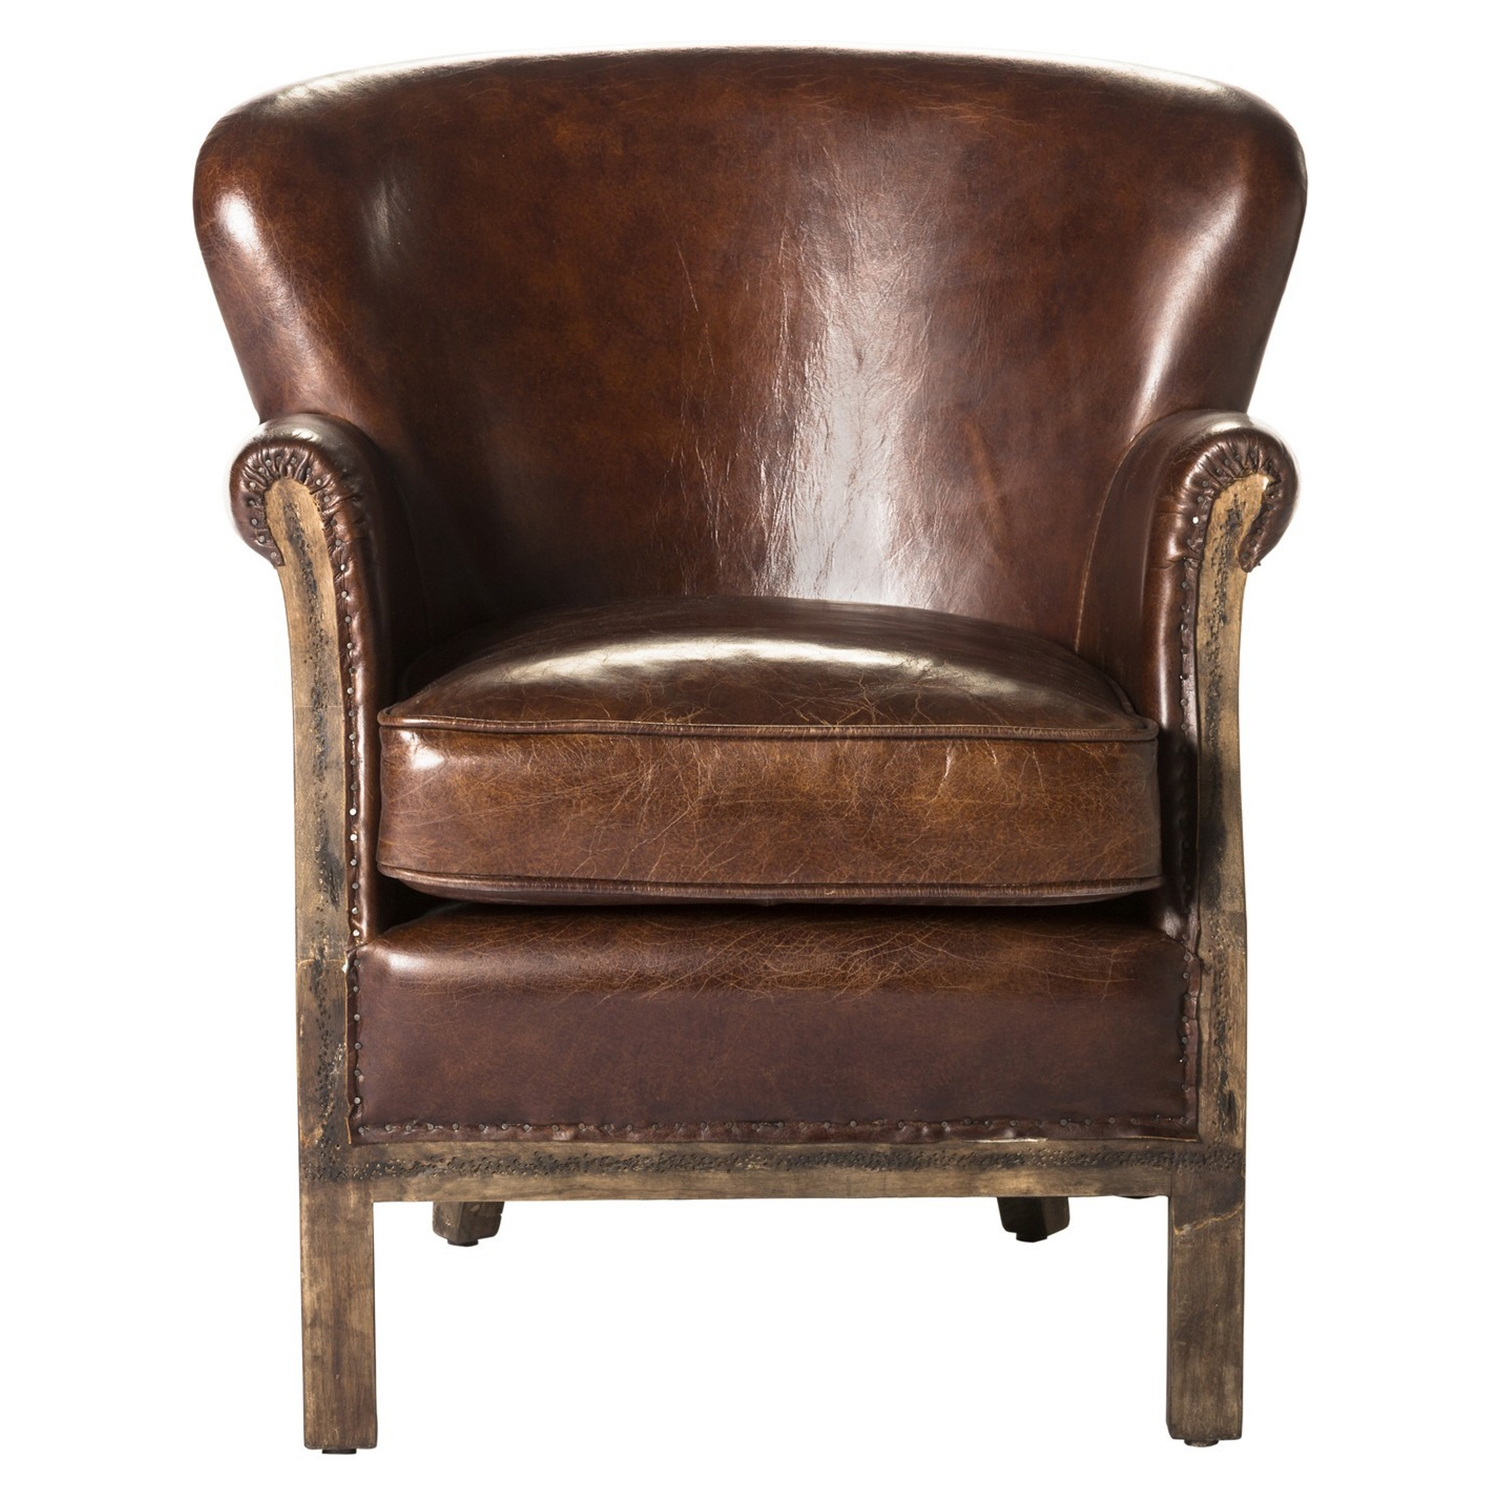 Abbey Leather Club Chair - Brown - MOES-PK-1039-20